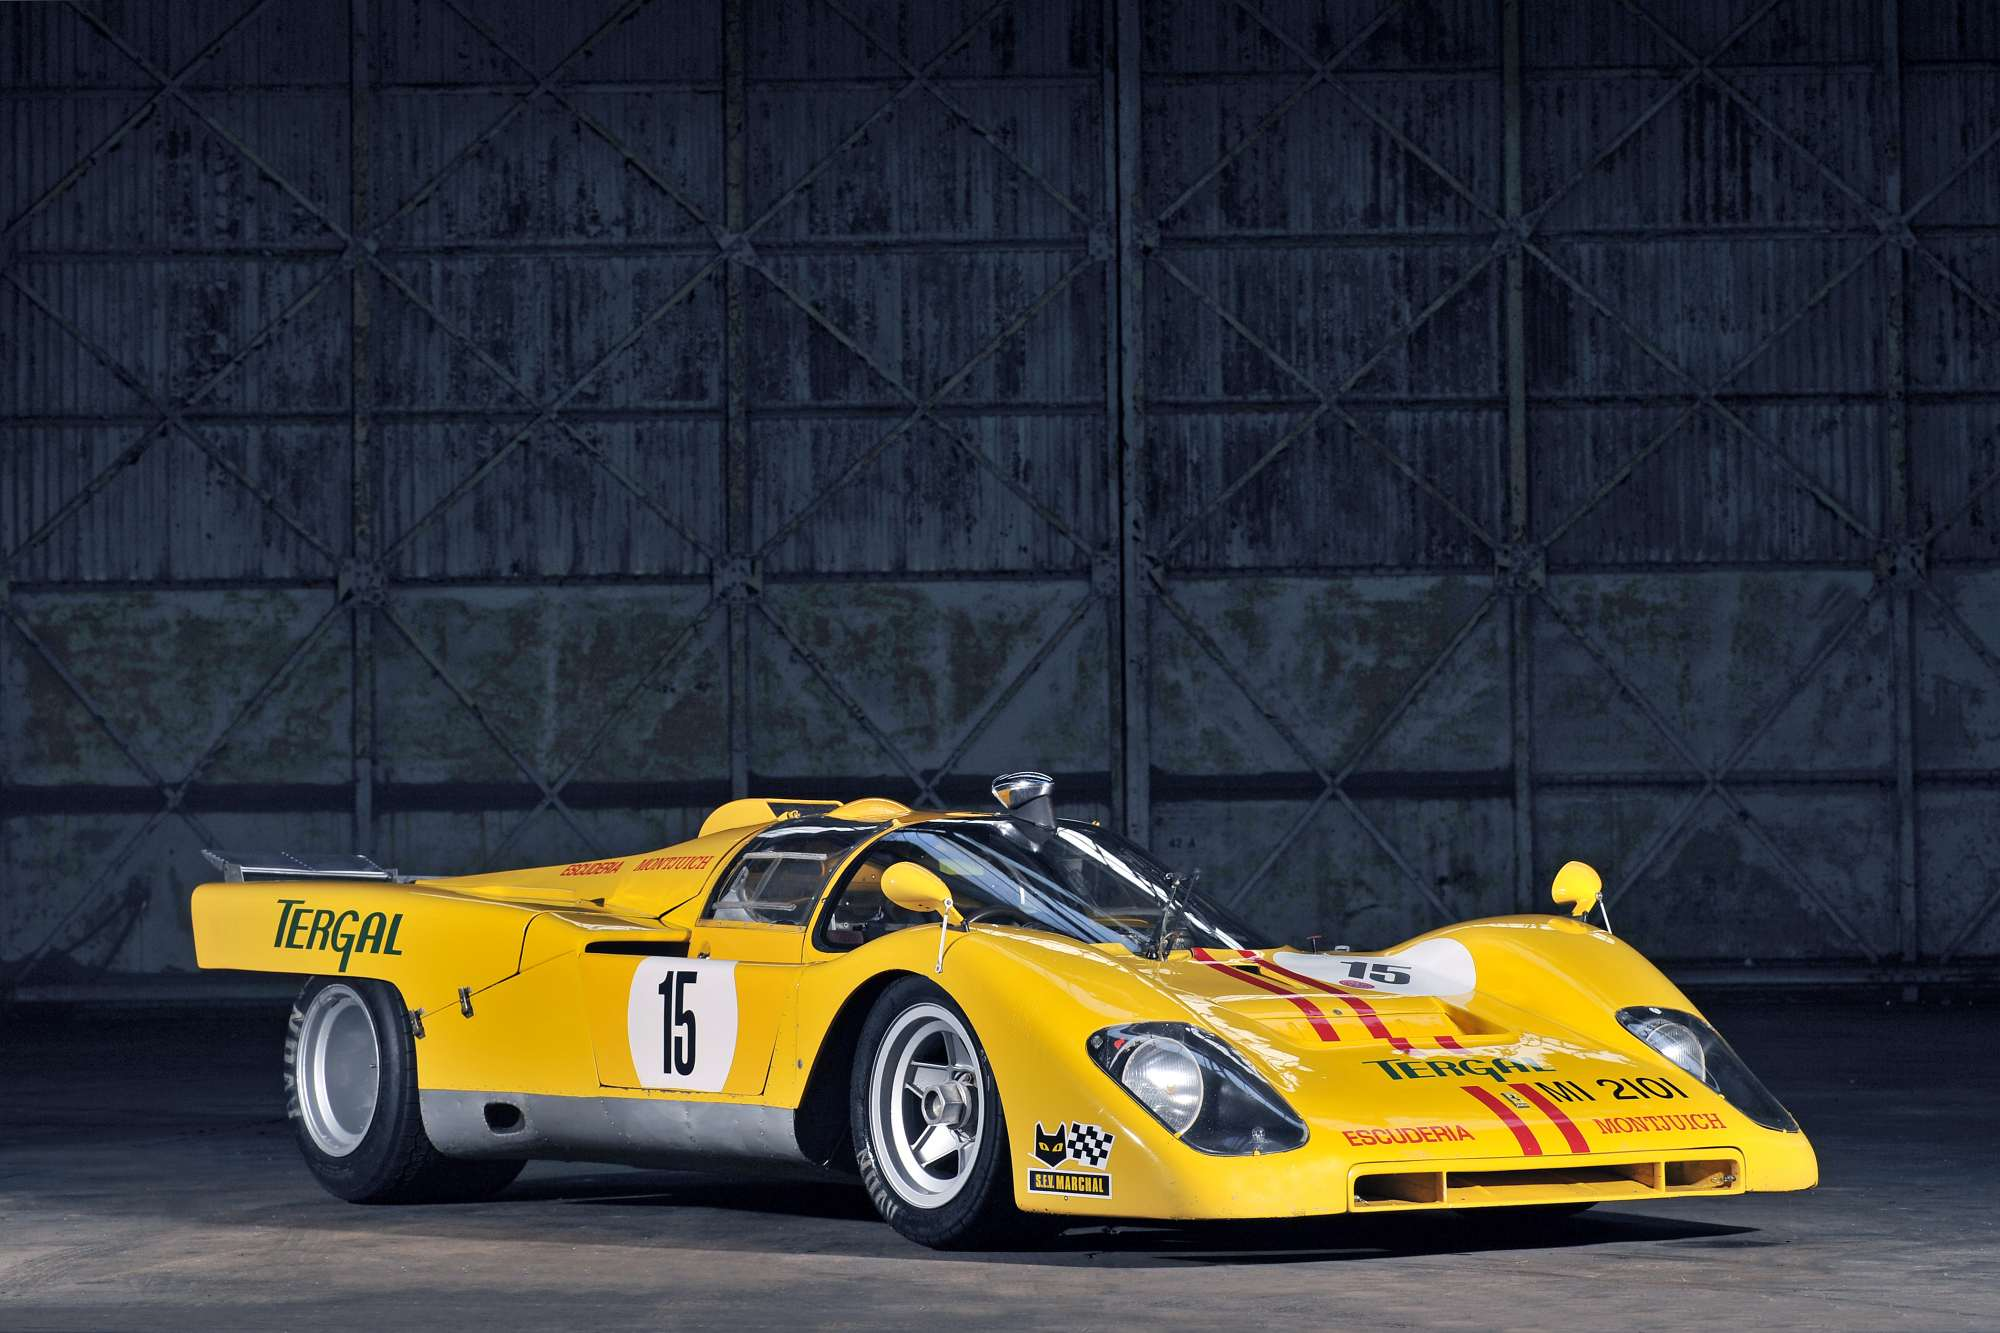 1970 Ferrari 512M | Cars for sale | FISKENS